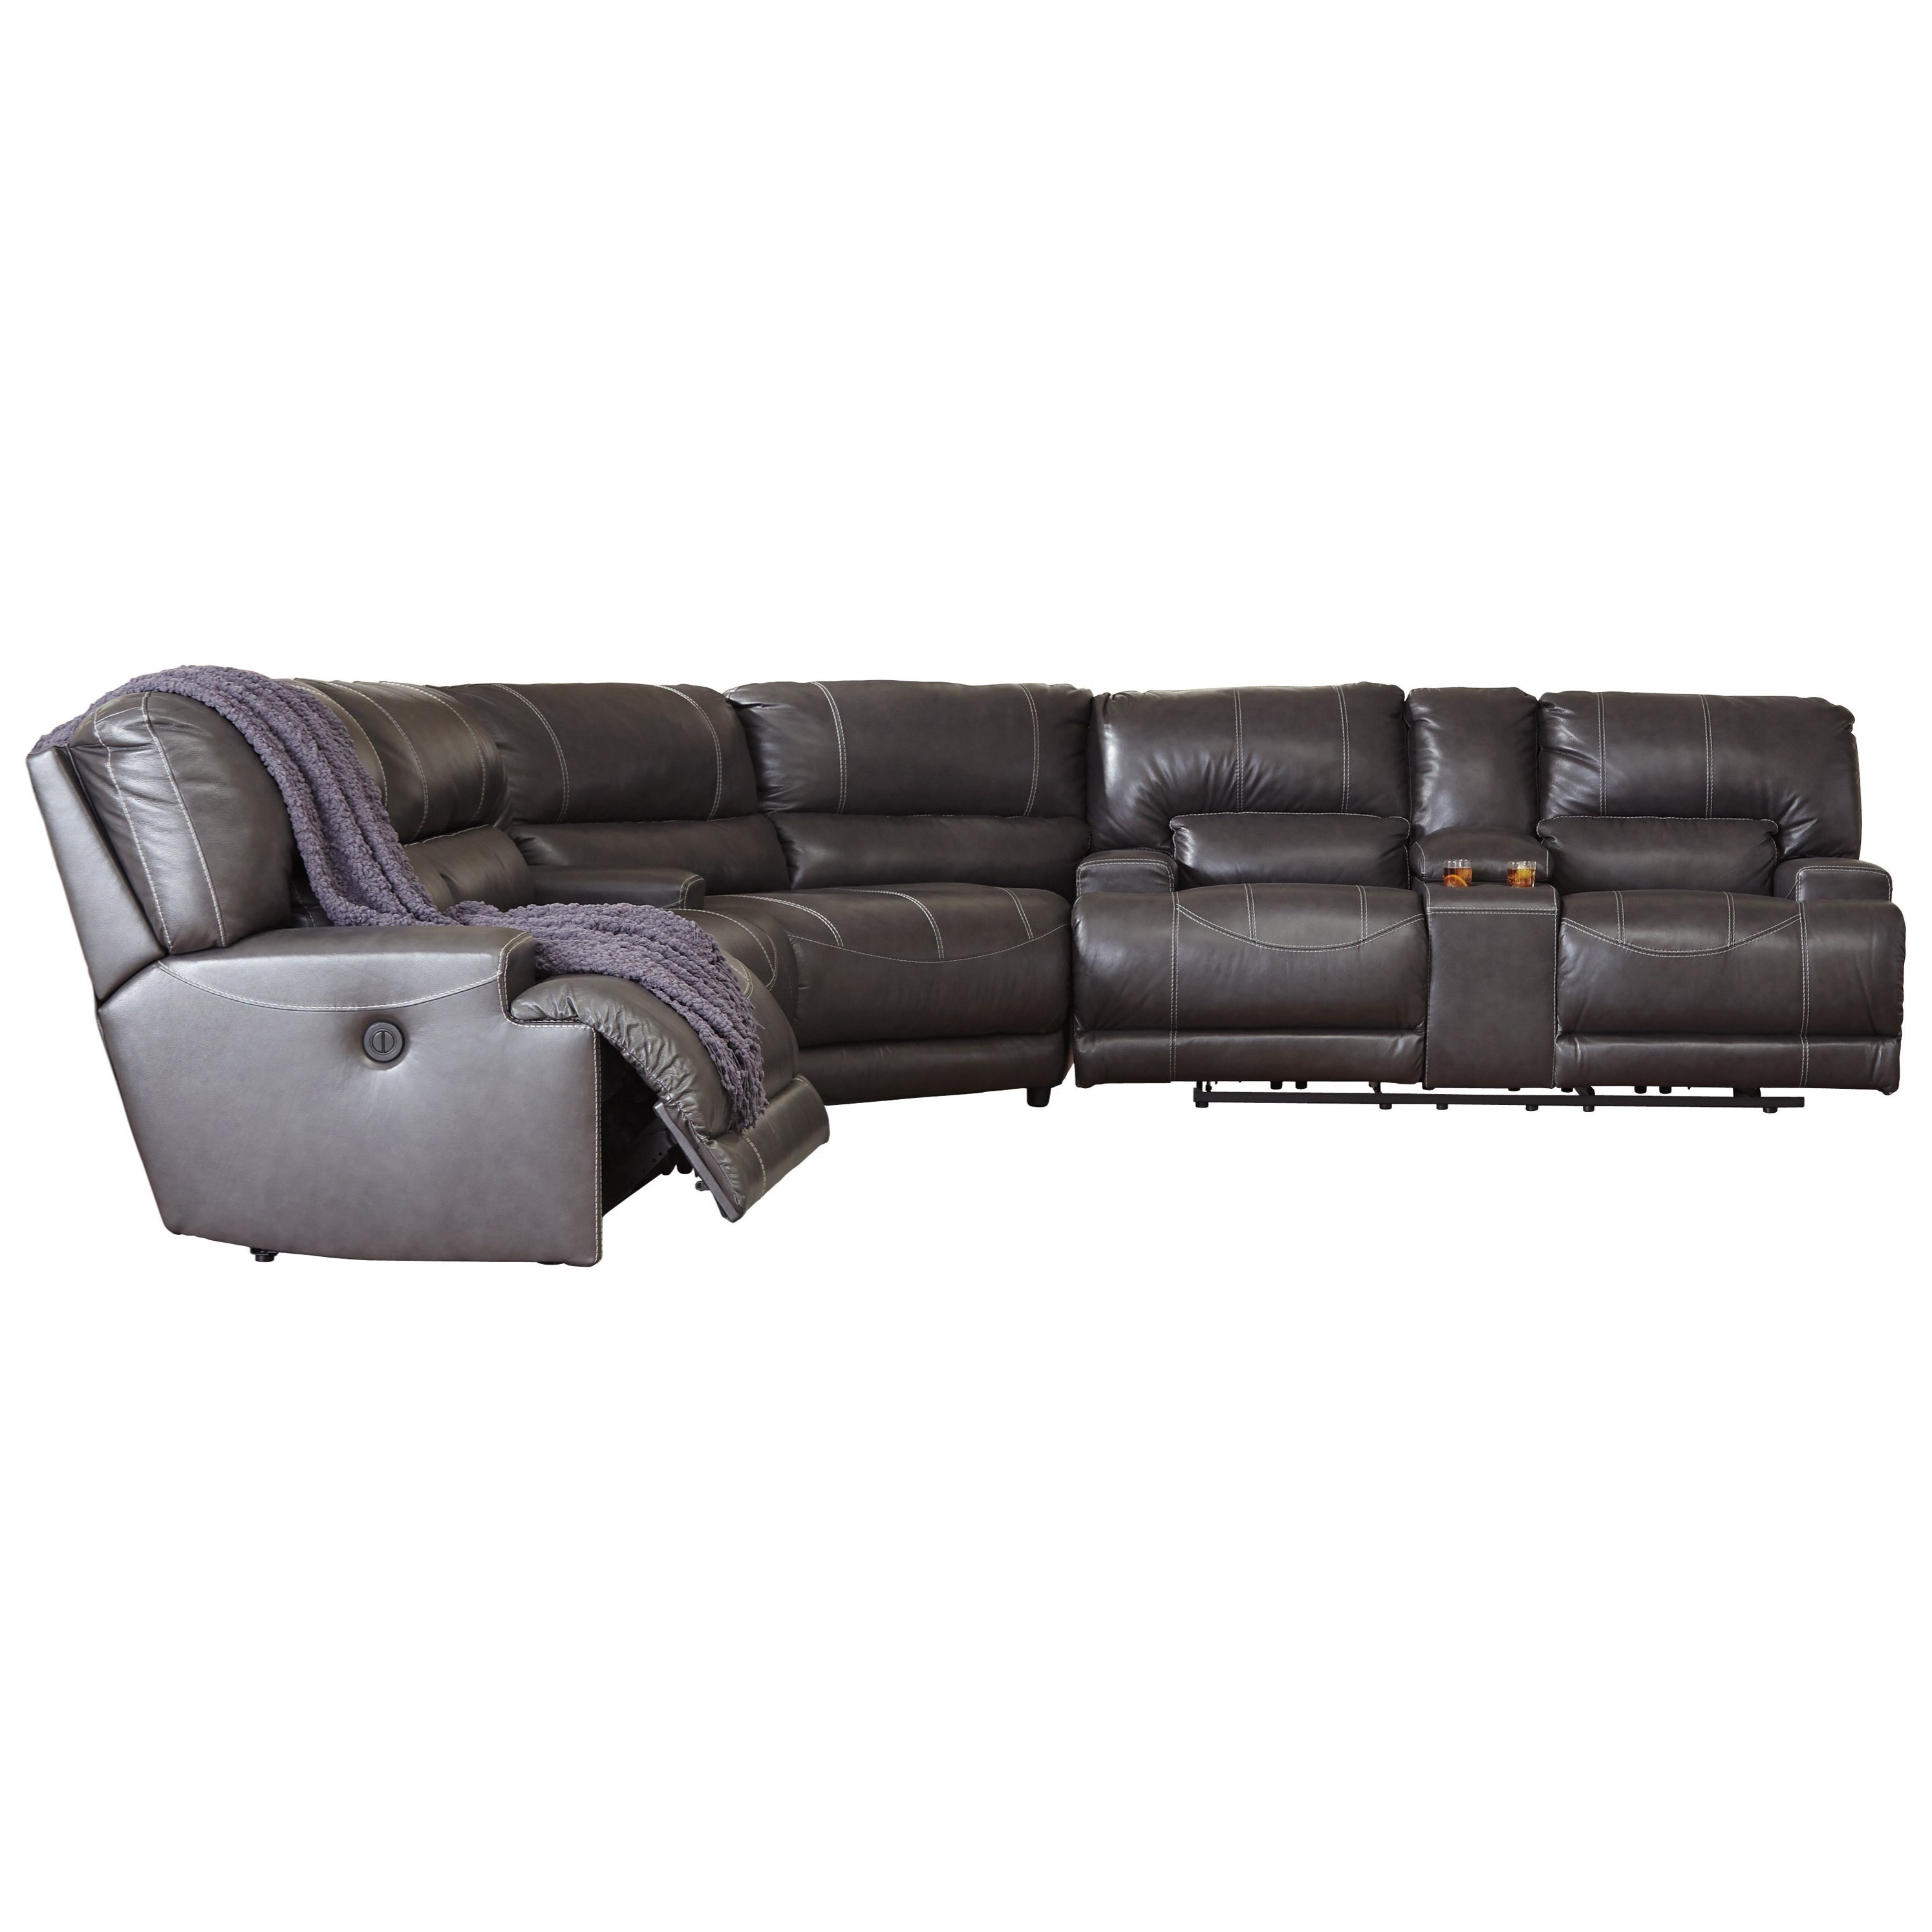 Jackson 6 Piece Power Reclining Sectionals With  Sleeper Inside Most Recent Reclining Sectional Sofas Jackson Pearl Madison Ridgeland Products (Gallery 14 of 20)